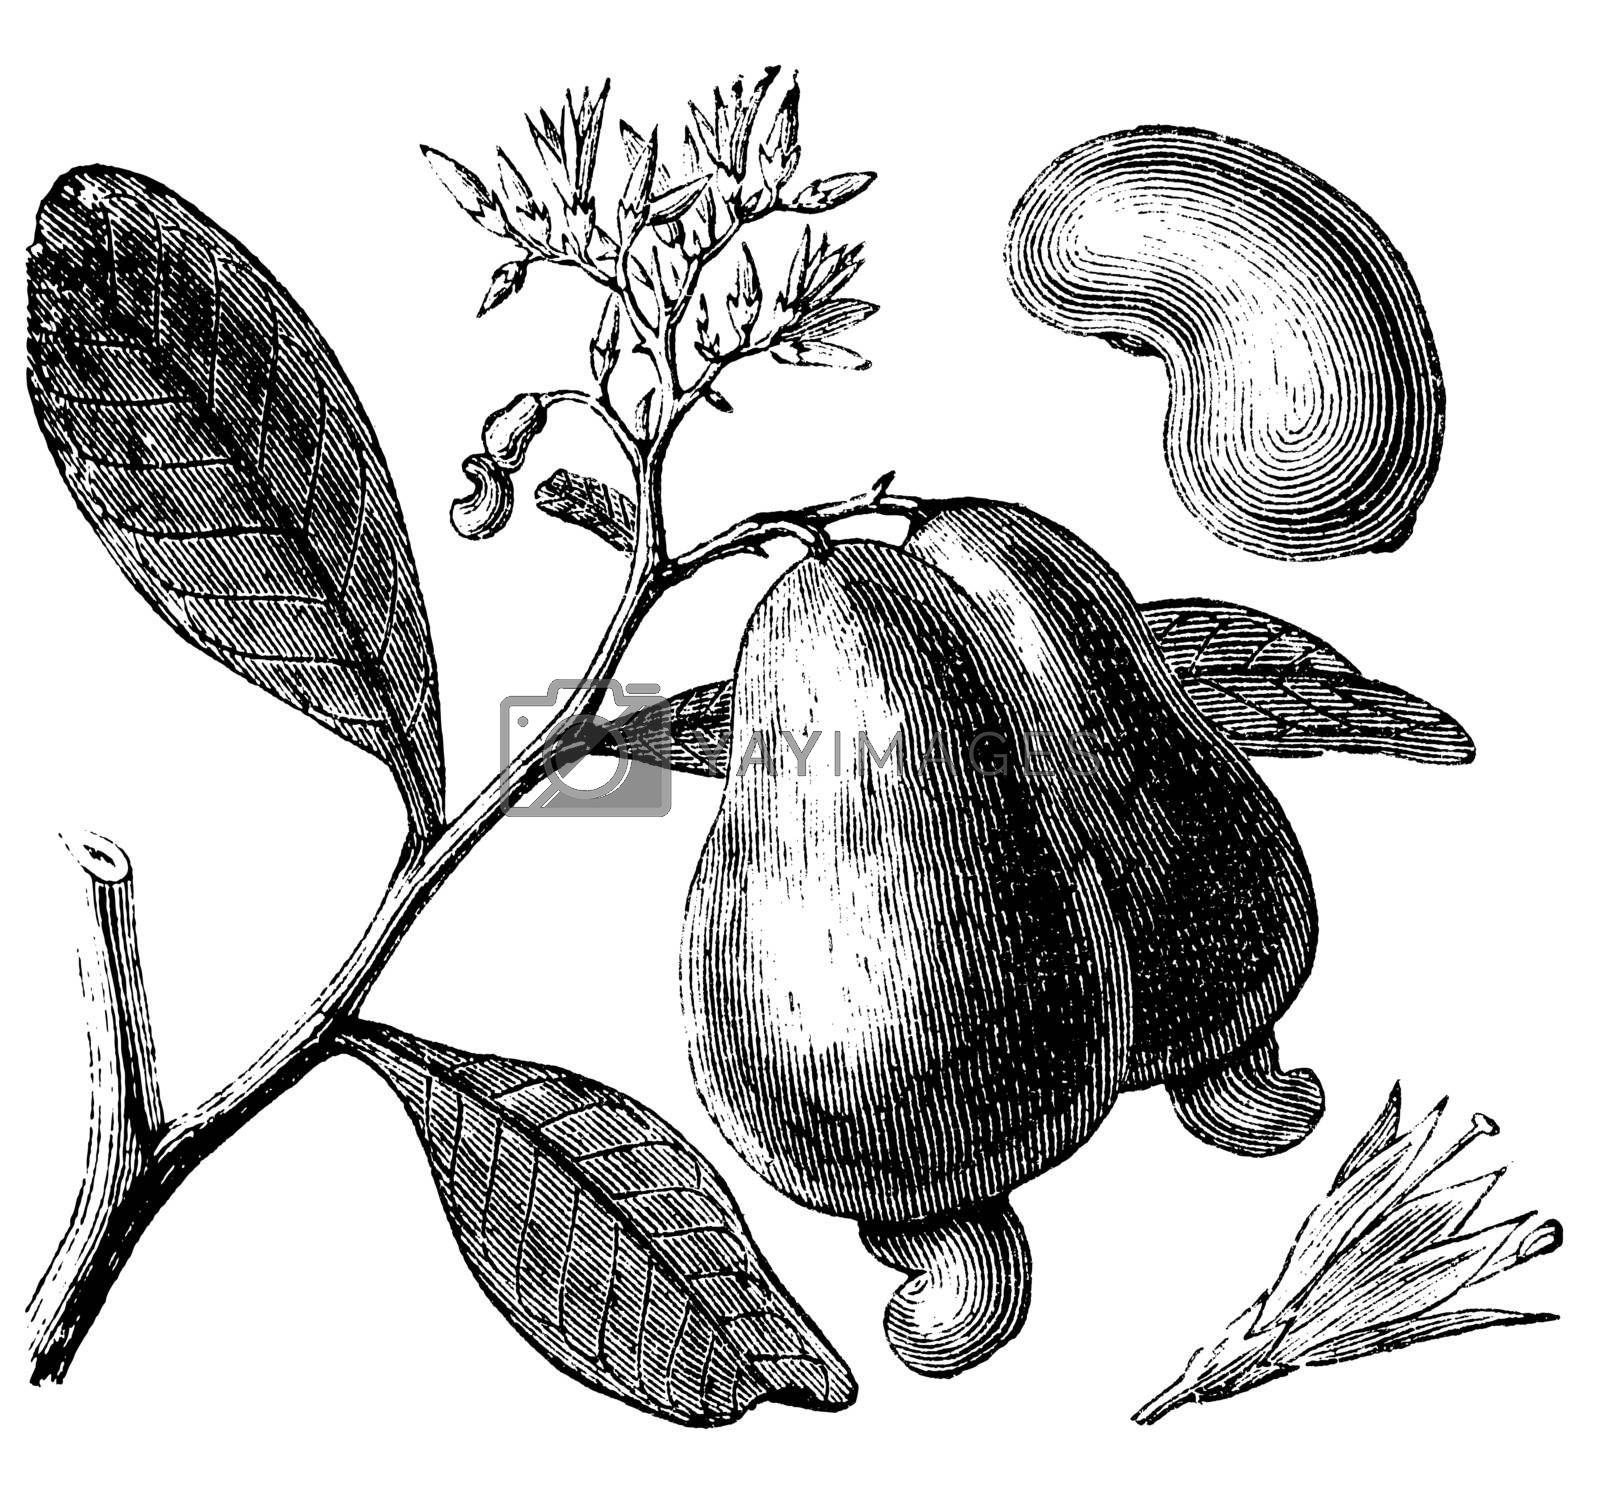 Cashew or Anacardium occidentale tree, apple and nuts vintage engraving. Old engraved illustration of caju tree, in vector, isolated against a white background.